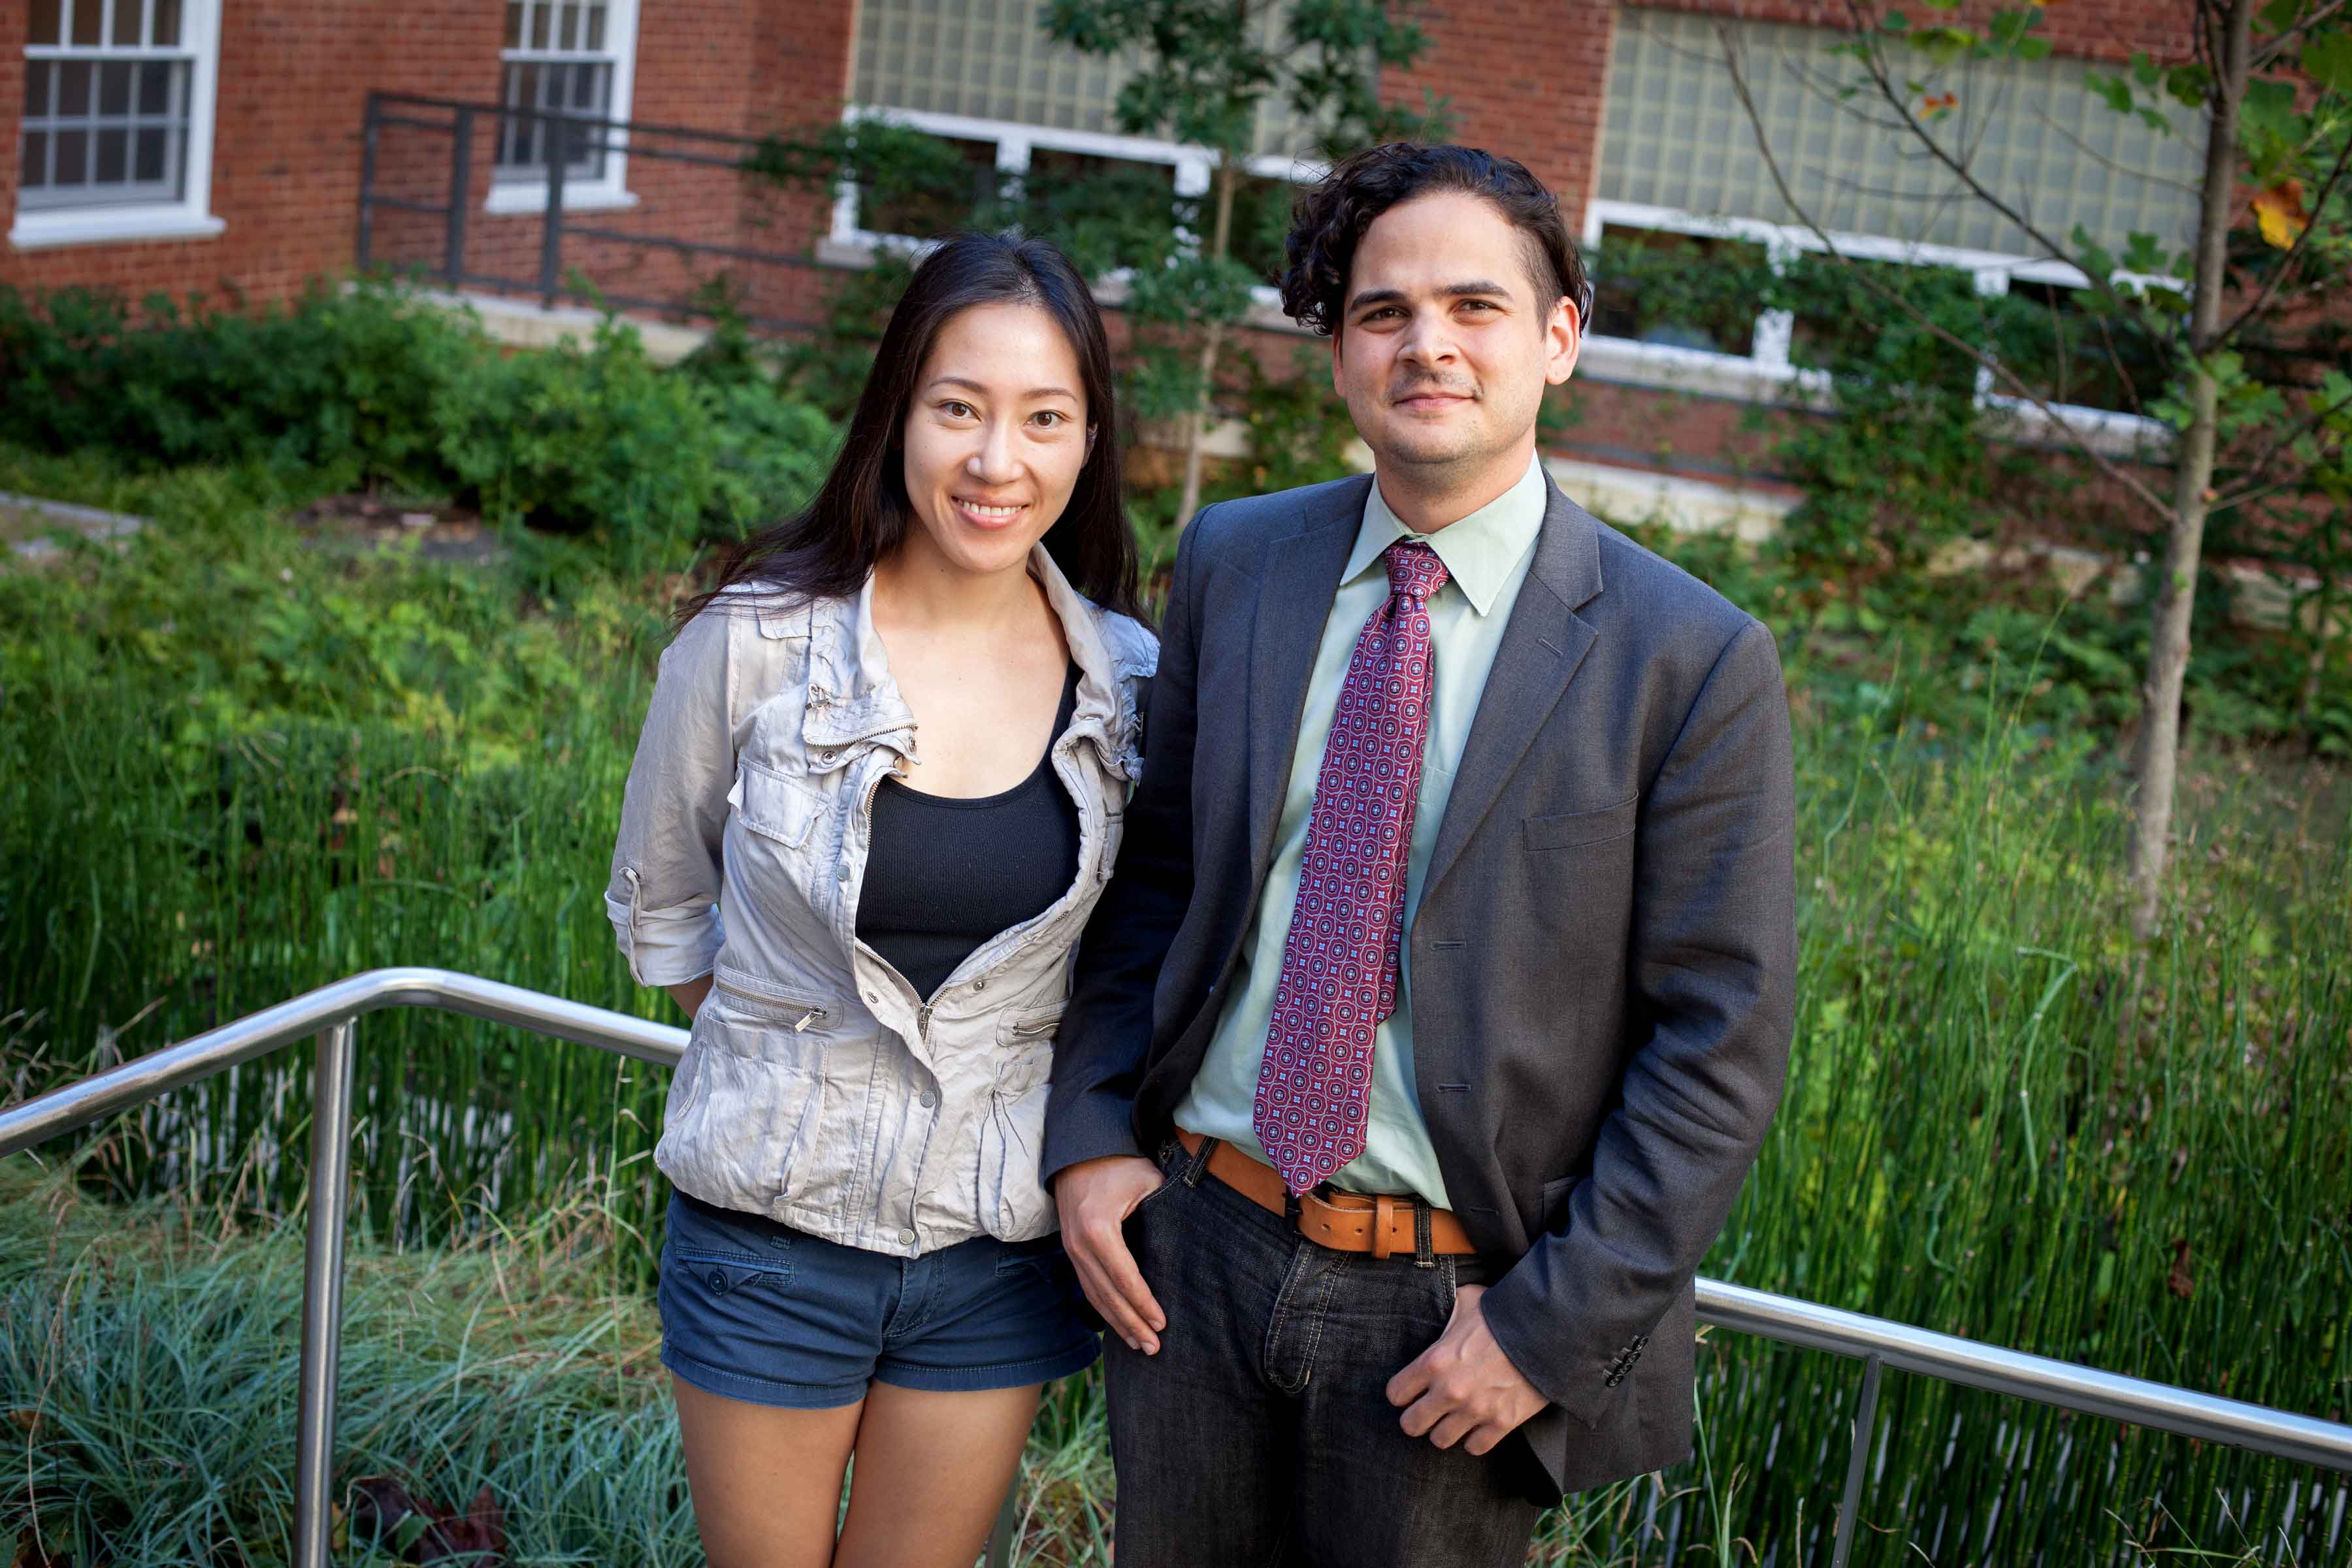 Bommae Kim, Ph.D. candidate in psychology, and James Ascher, Ph.D. candidate in English.